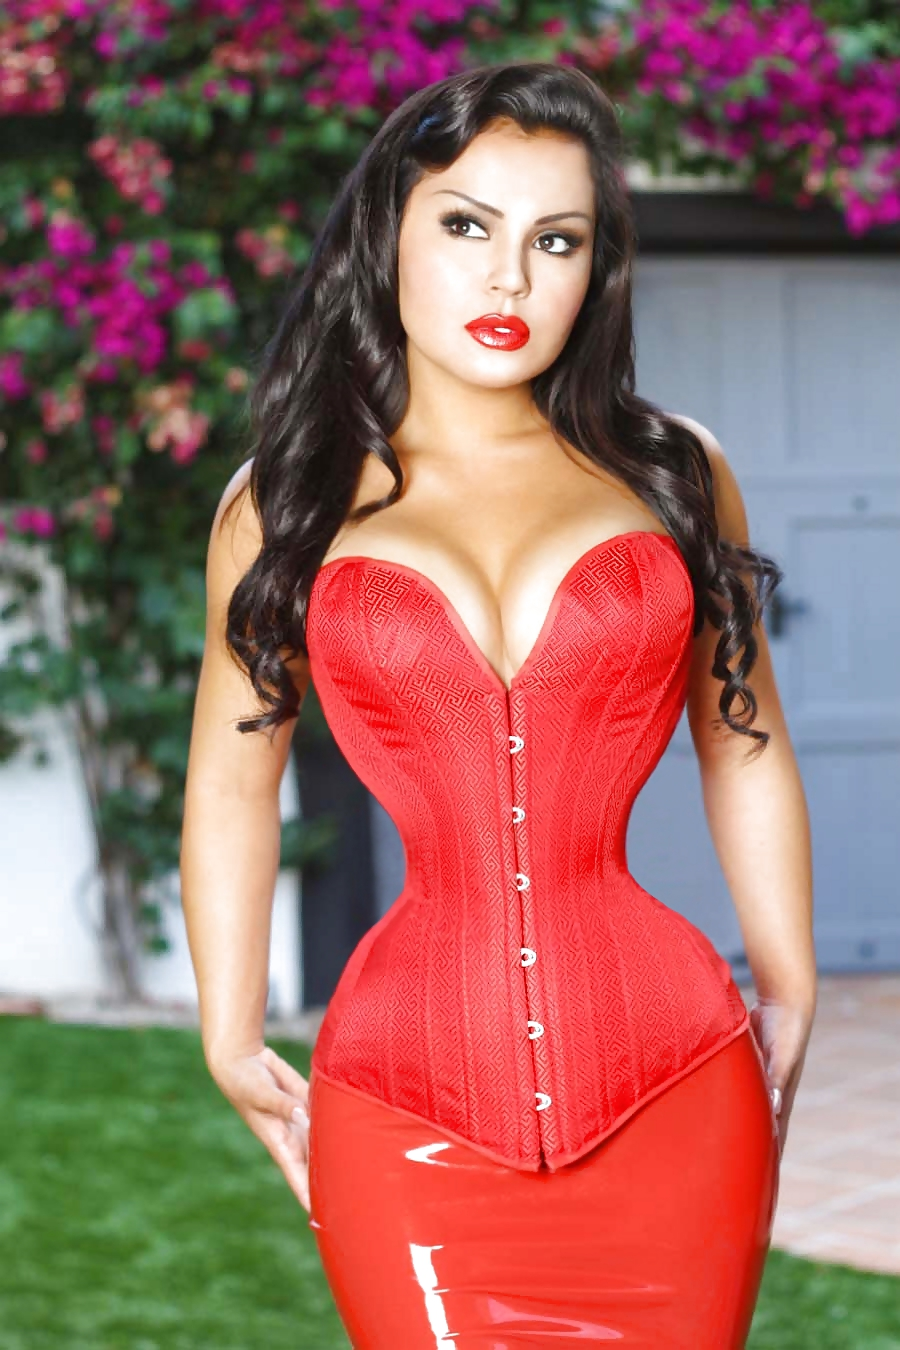 Corset sex galleries